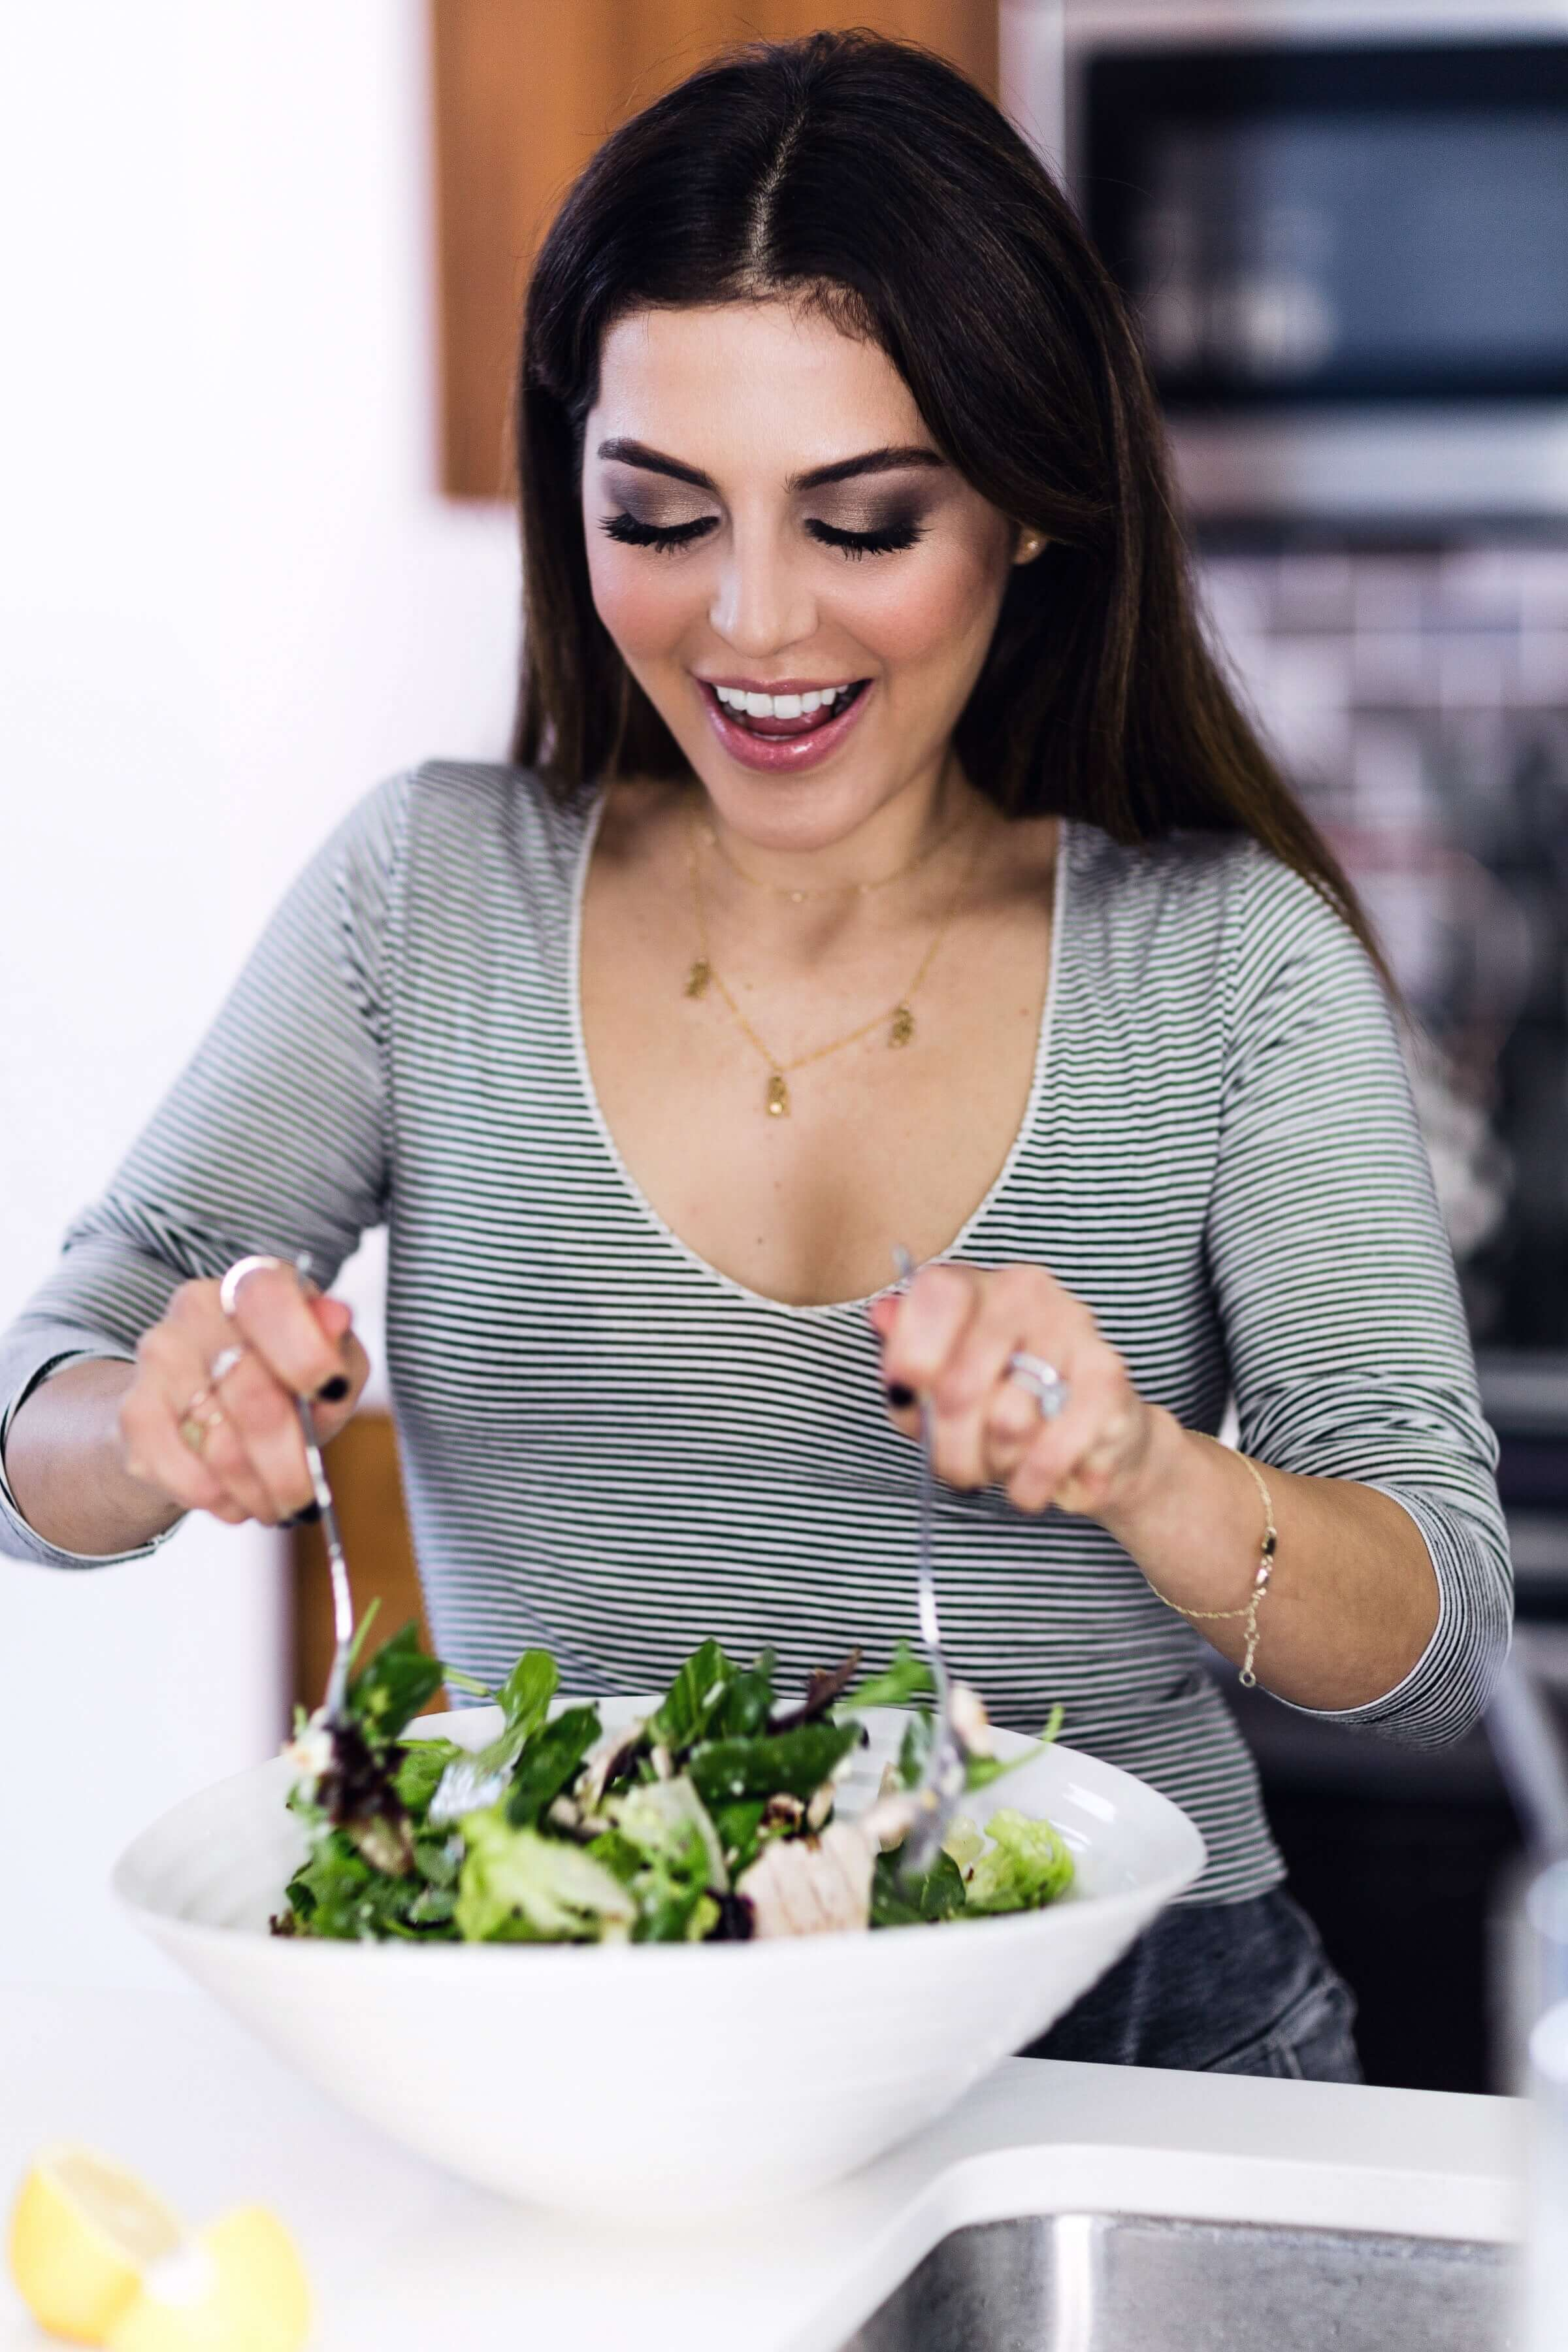 sona gasparian's tips for a new year detox